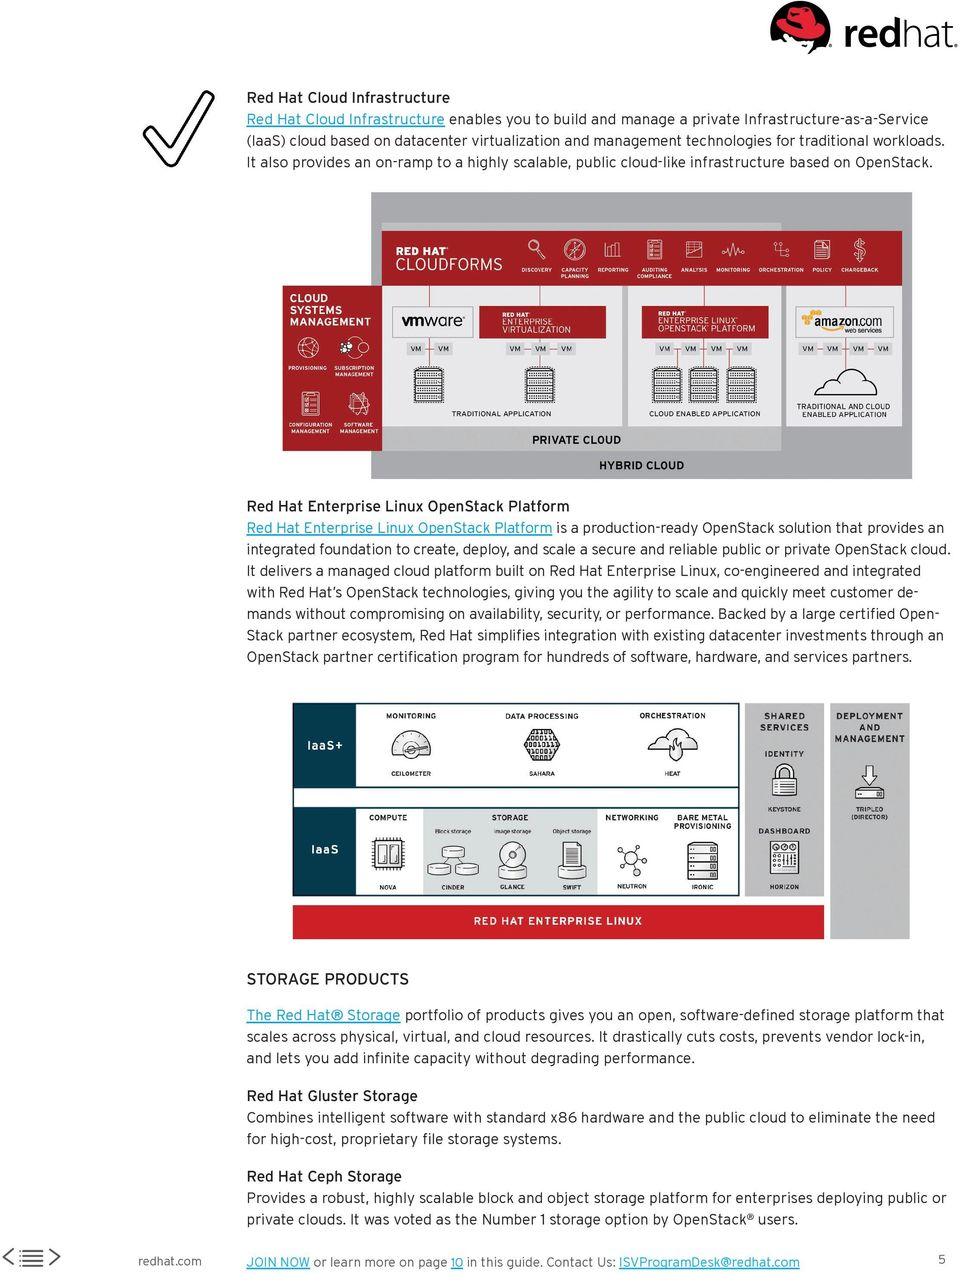 Red Hat Enterprise Linux OpenStack Platform Red Hat Enterprise Linux OpenStack Platform is a production-ready OpenStack solution that provides an integrated foundation to create, deploy, and scale a